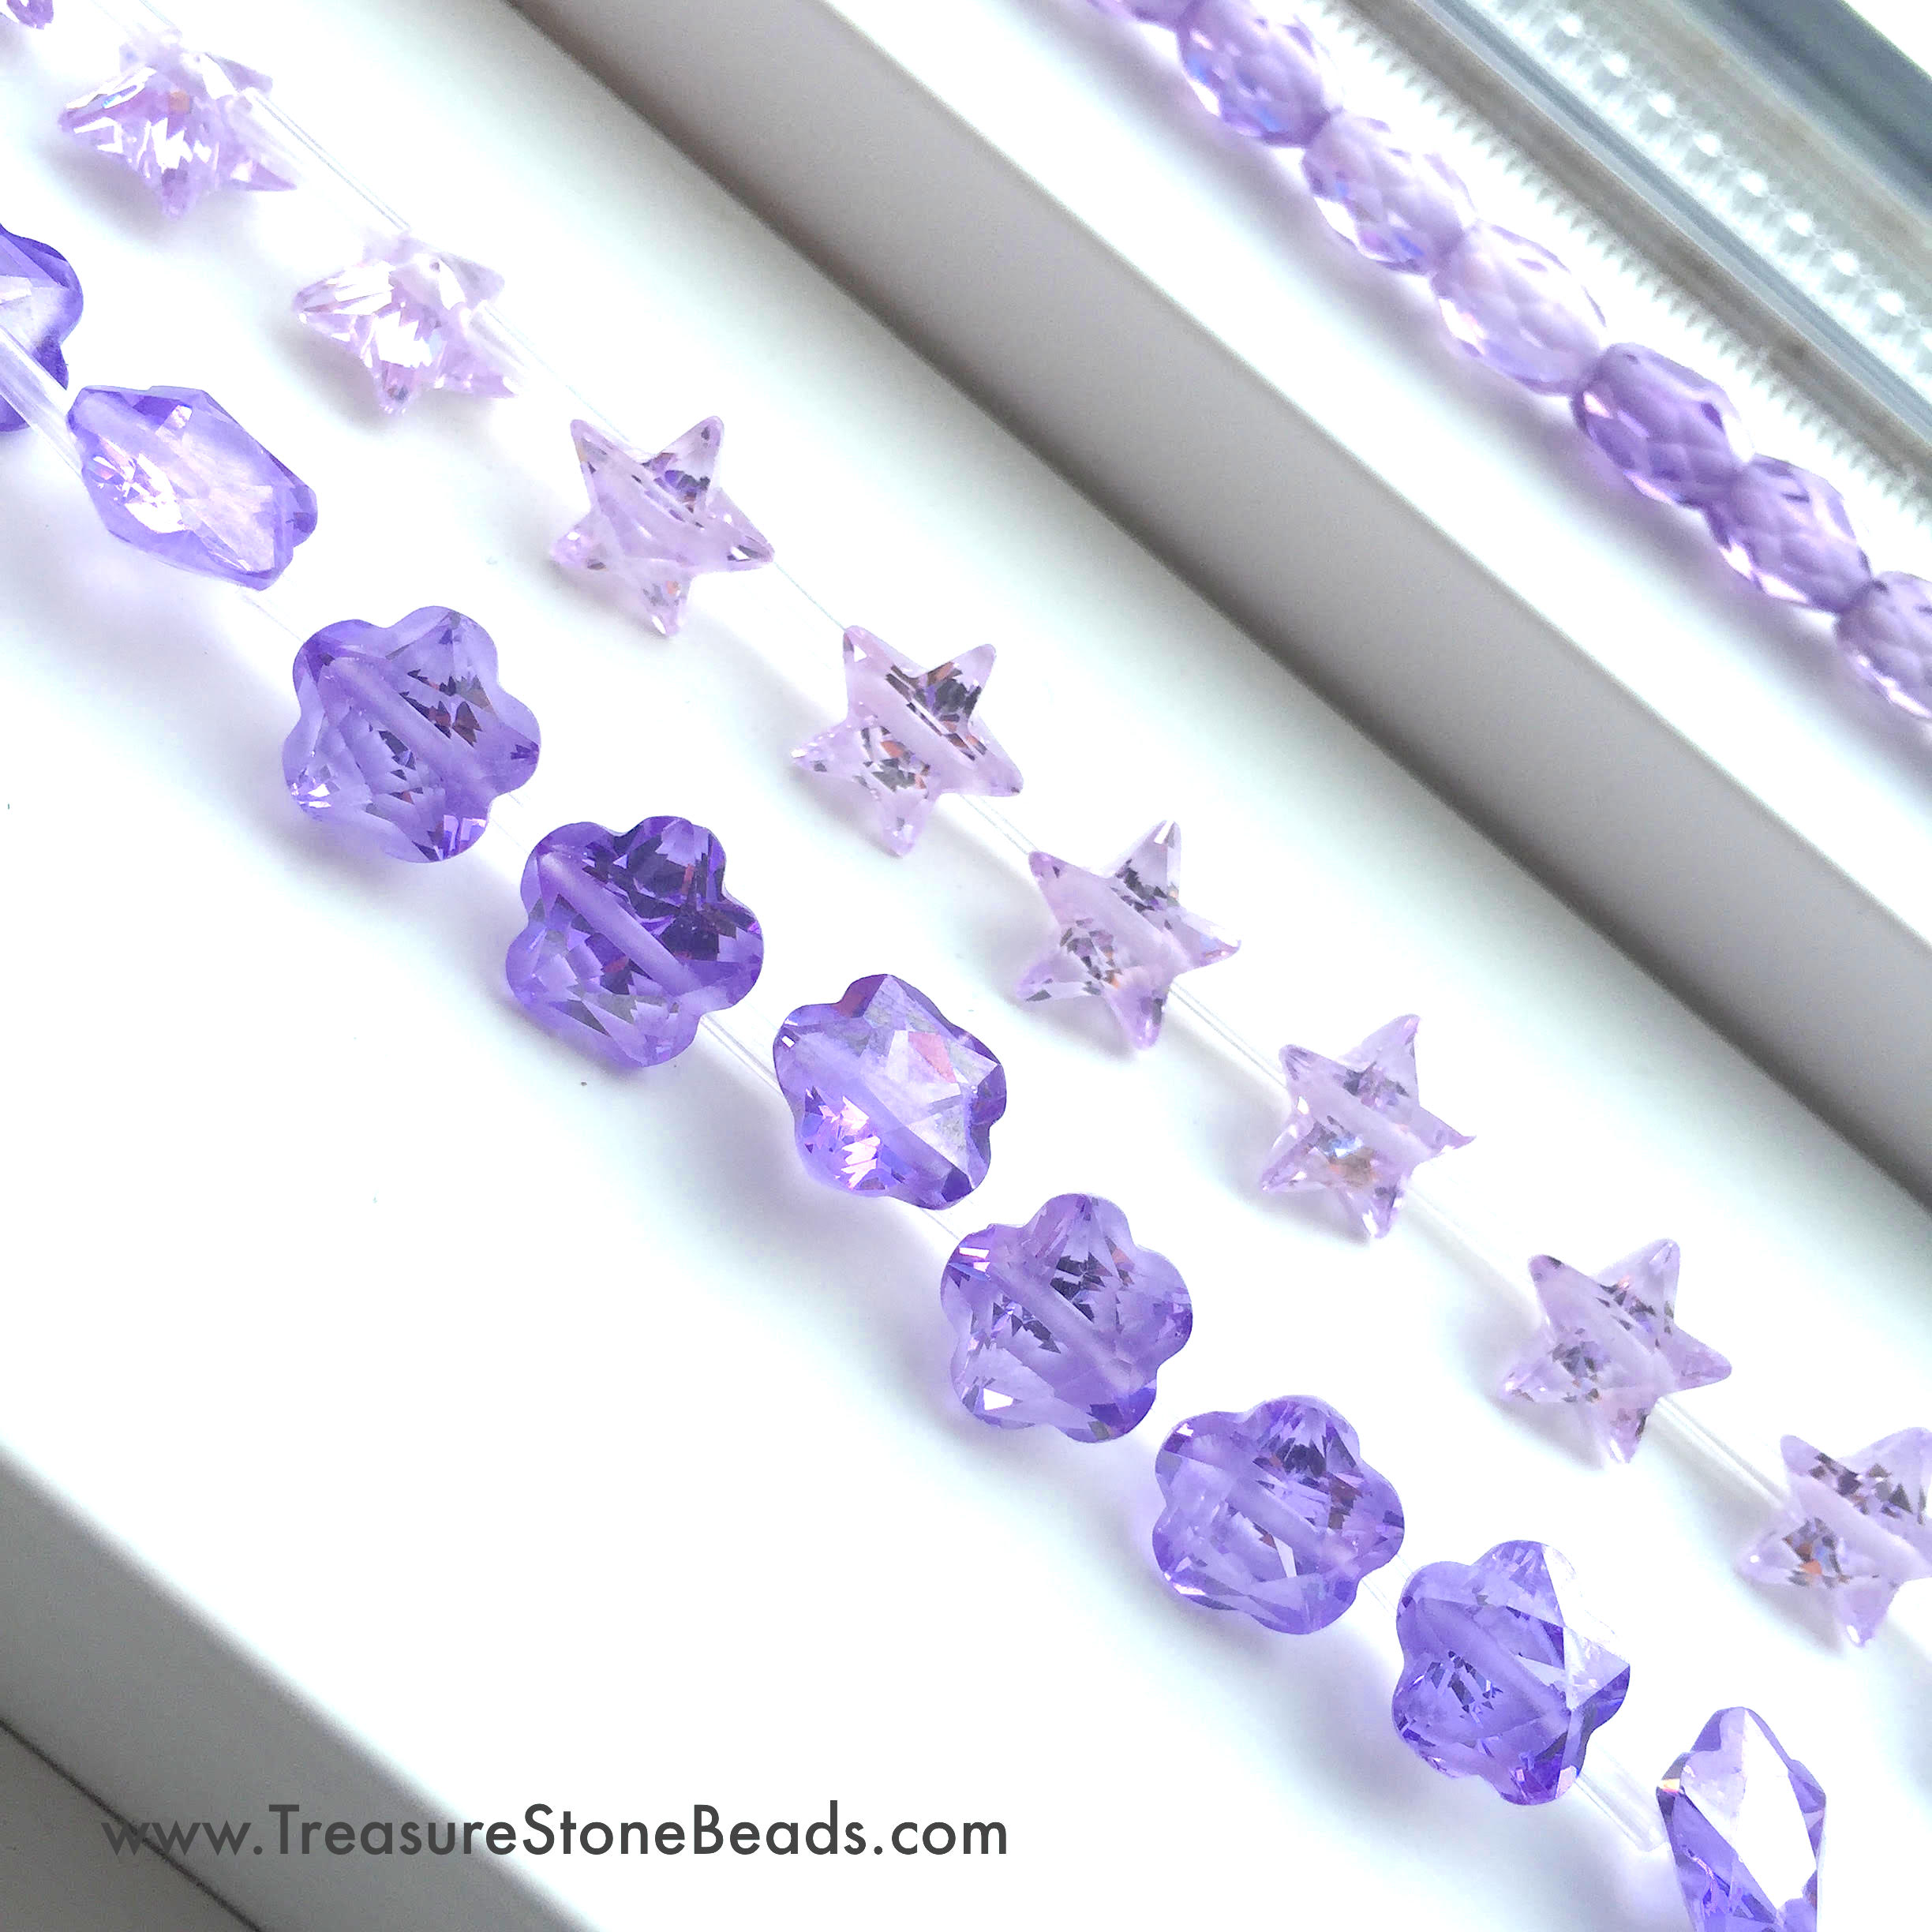 Cubic Zirconia Beads, 3 strands.